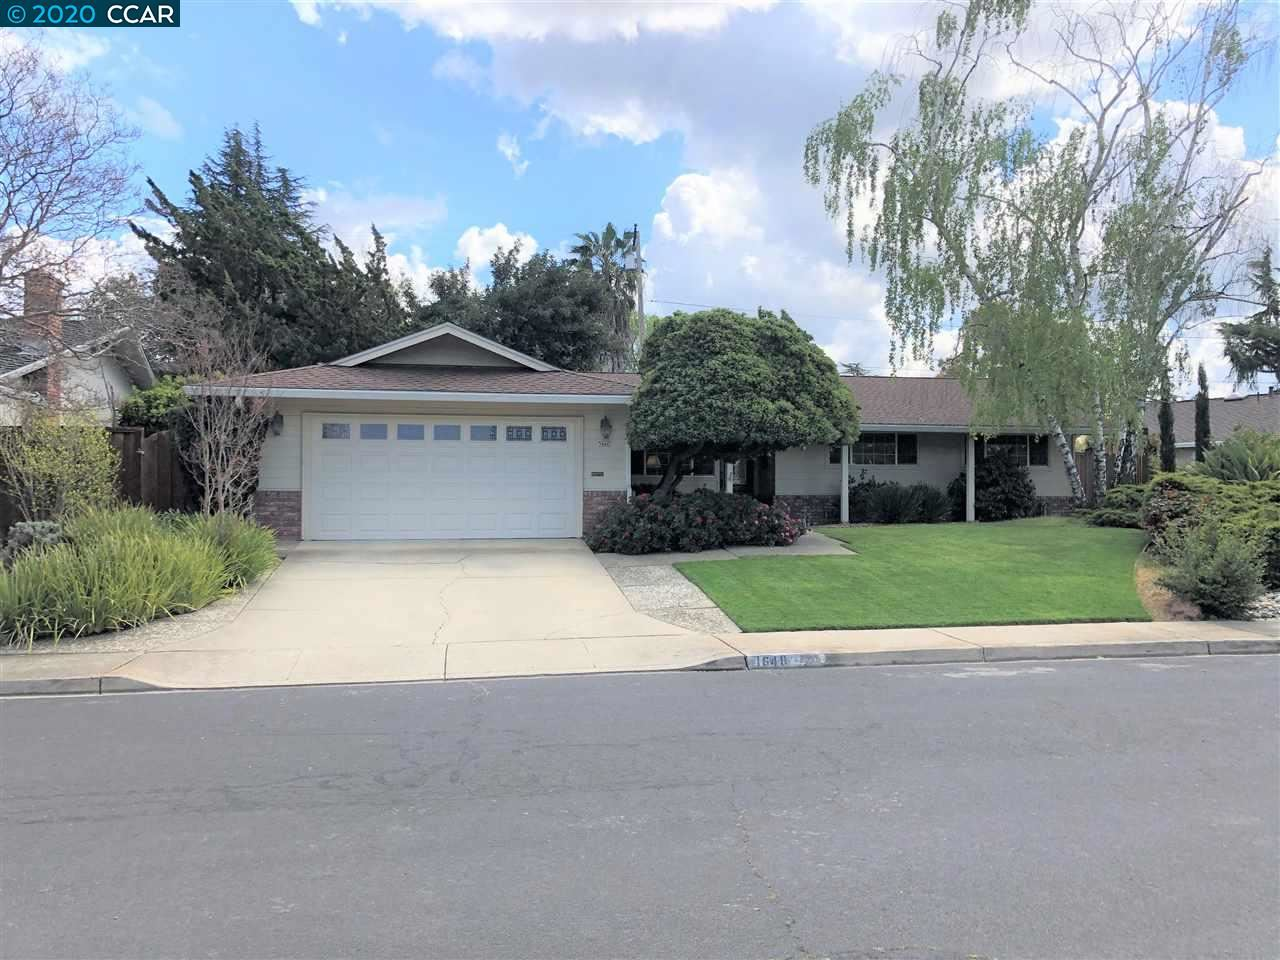 Photo for 1648 Beckner Ct, CONCORD, CA 94521 (MLS # 40900368)